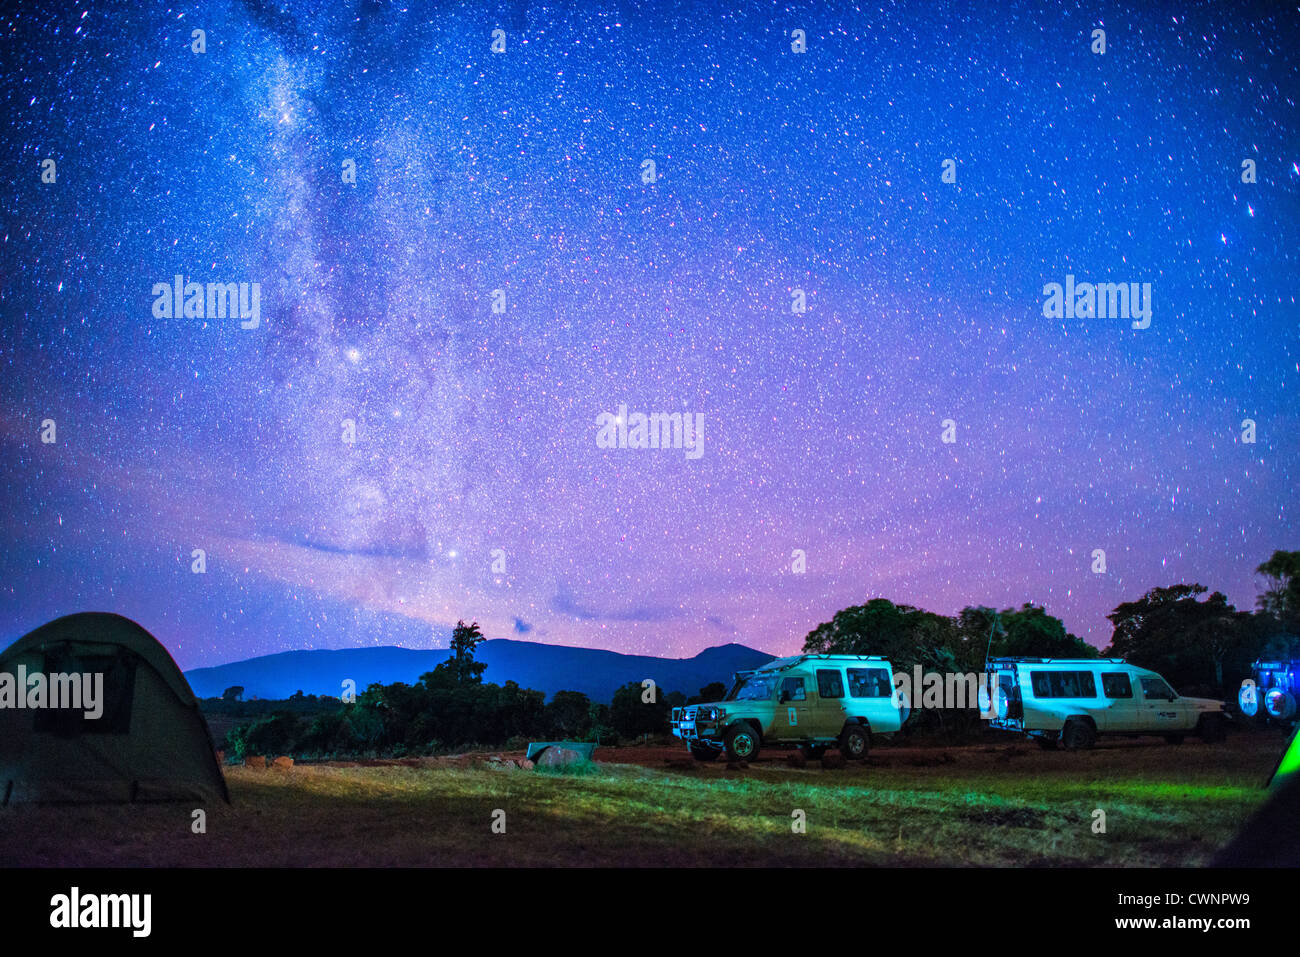 NGORONGORO CONSERVATIONAL AREA, Tanzania - A clear night sky with stars and the milky way clearly visible from the - Stock Image